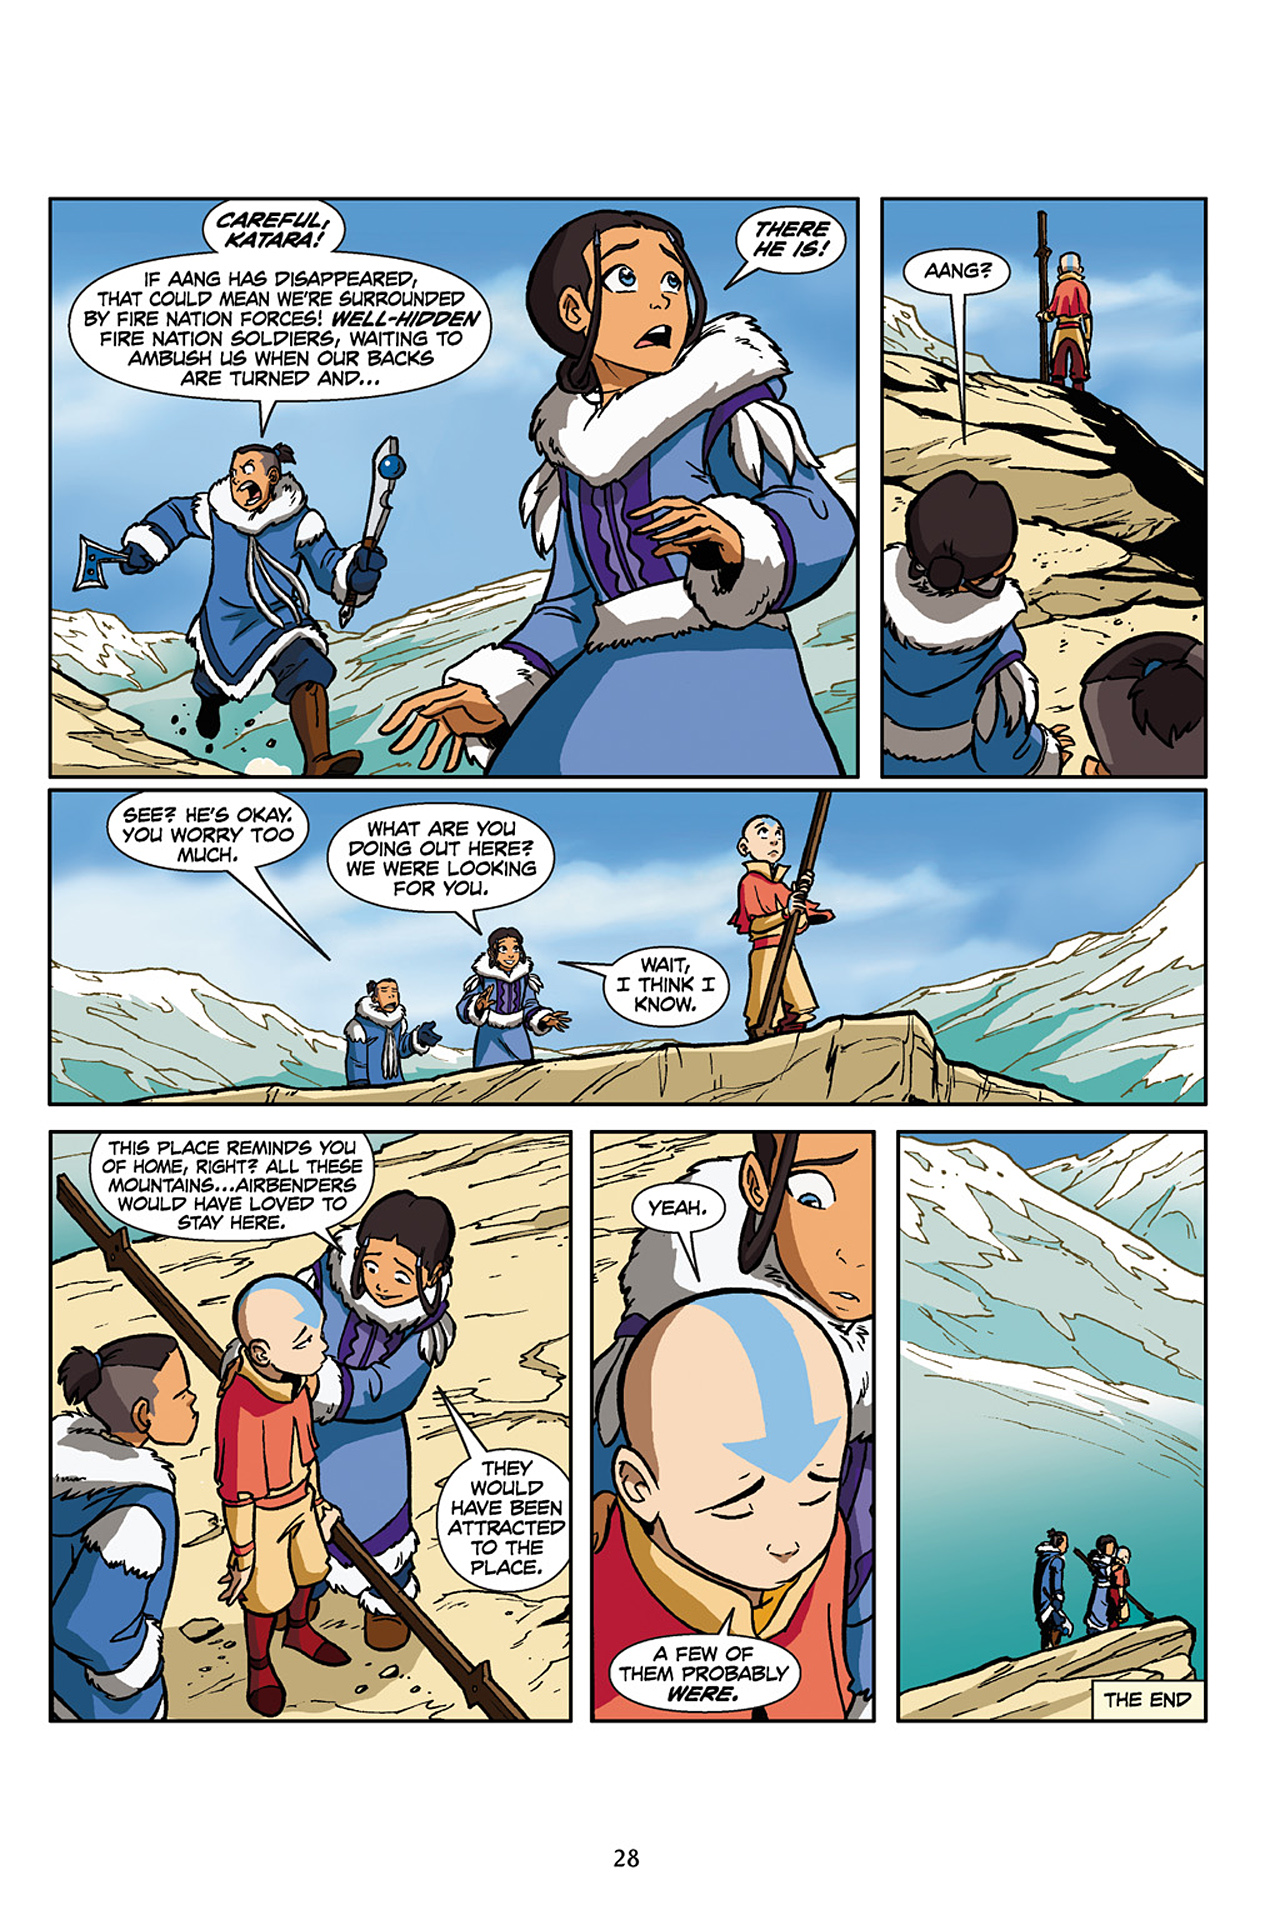 Nickelodeon Avatar: The Last Airbender - The Lost Adventures chap full pic 29